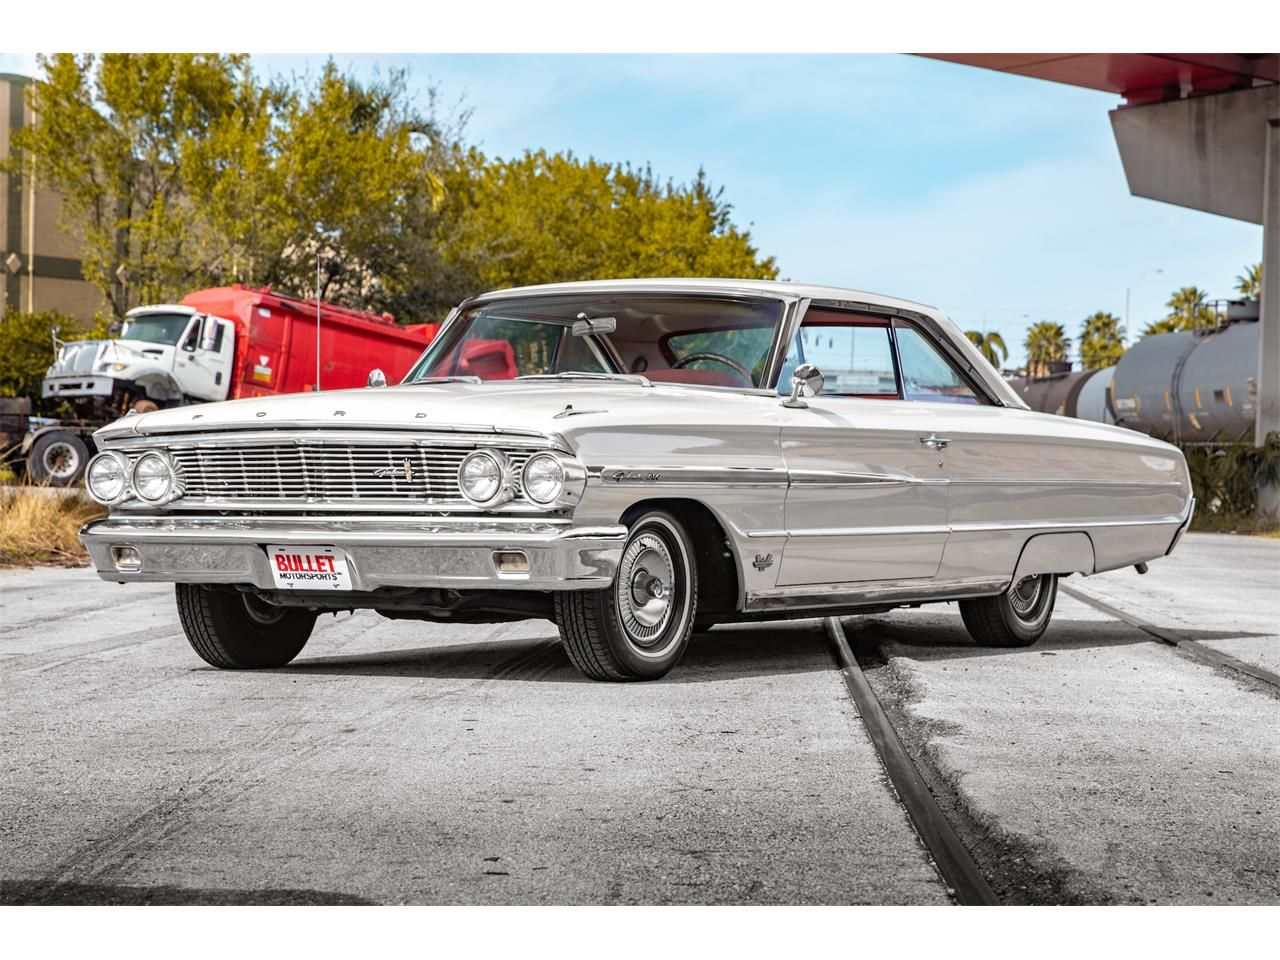 Cream White 1964 Ford Galaxie 500 For Sale Located In Fort Lauderdale Florida 25 000 Classiccars Com Id Cc 1190427 Ford Galaxie Ford Galaxie 500 1964 Ford